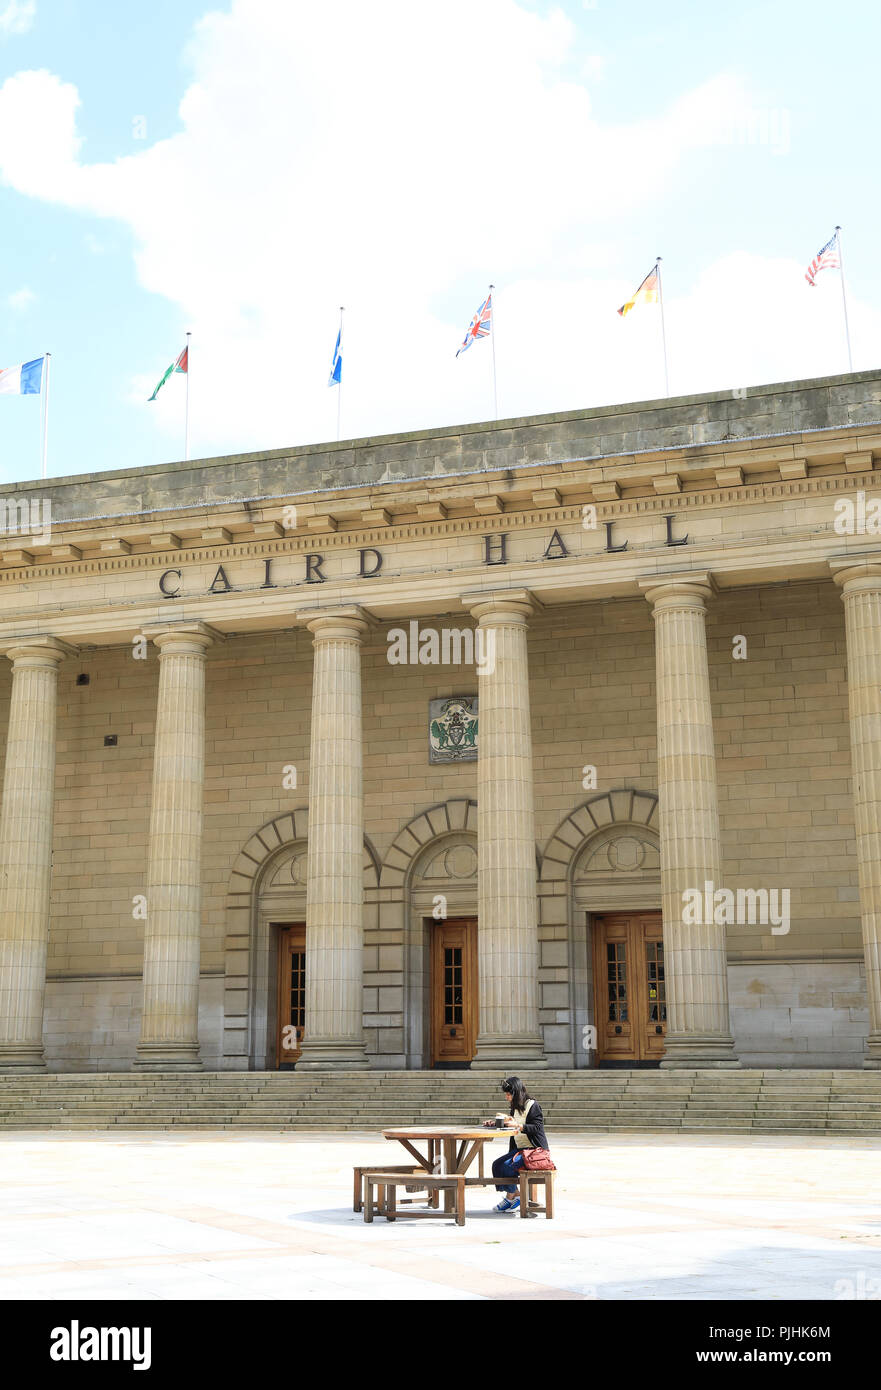 Caird Hall, a concert auditorium on City Square, in the centre of Dundee, on Tayside, in Scotland, UK - Stock Image